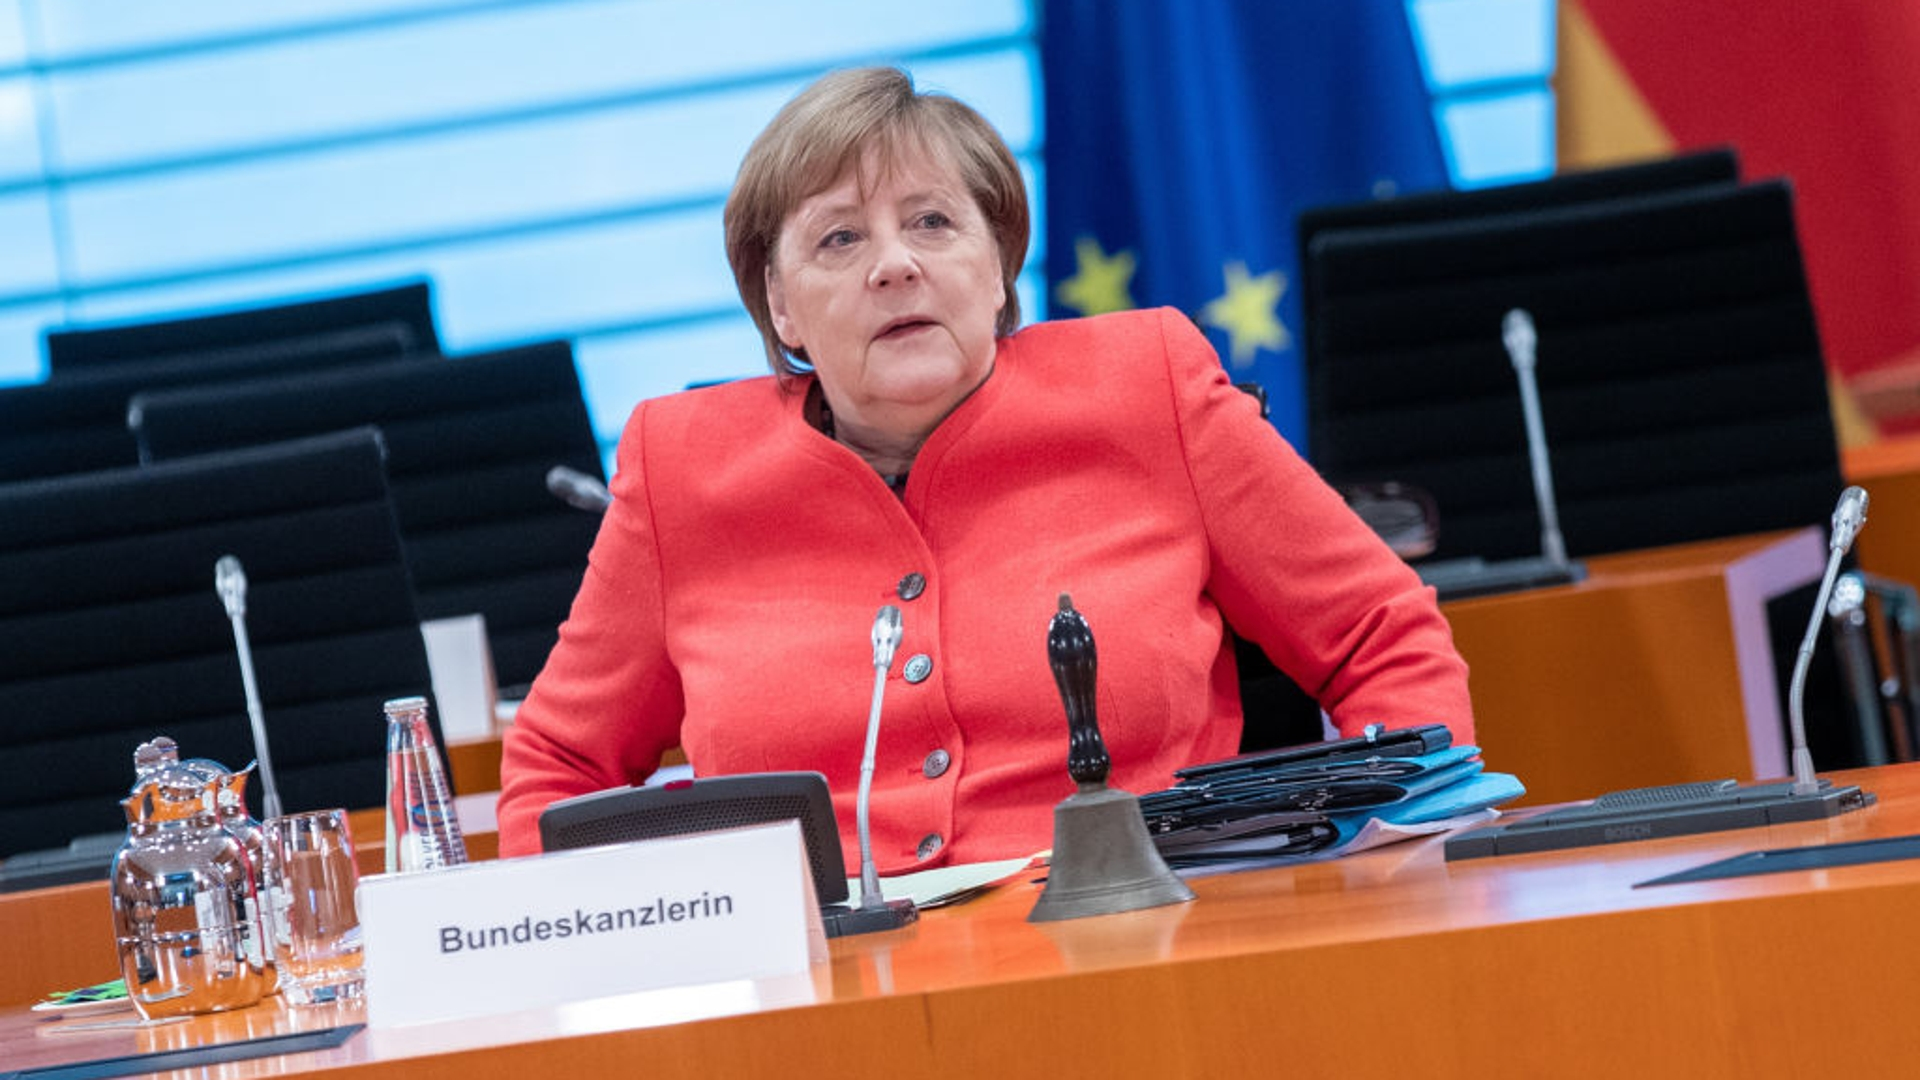 Germany's EU presidency could make or break the union